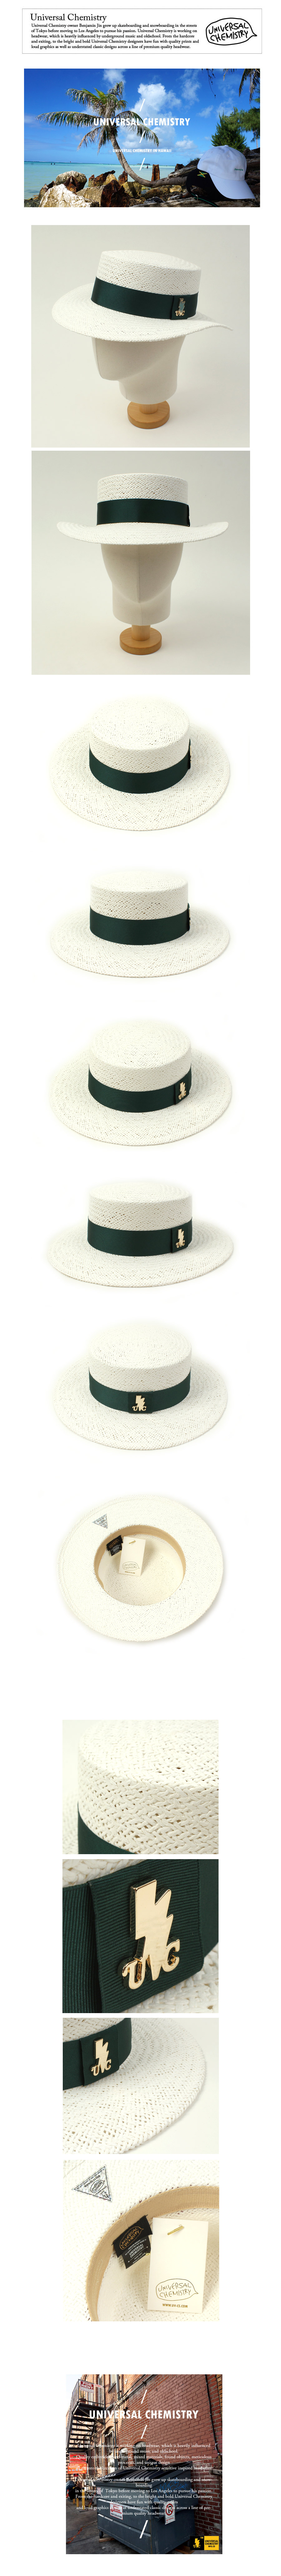 Green Line White Panama Hat 파나마햇